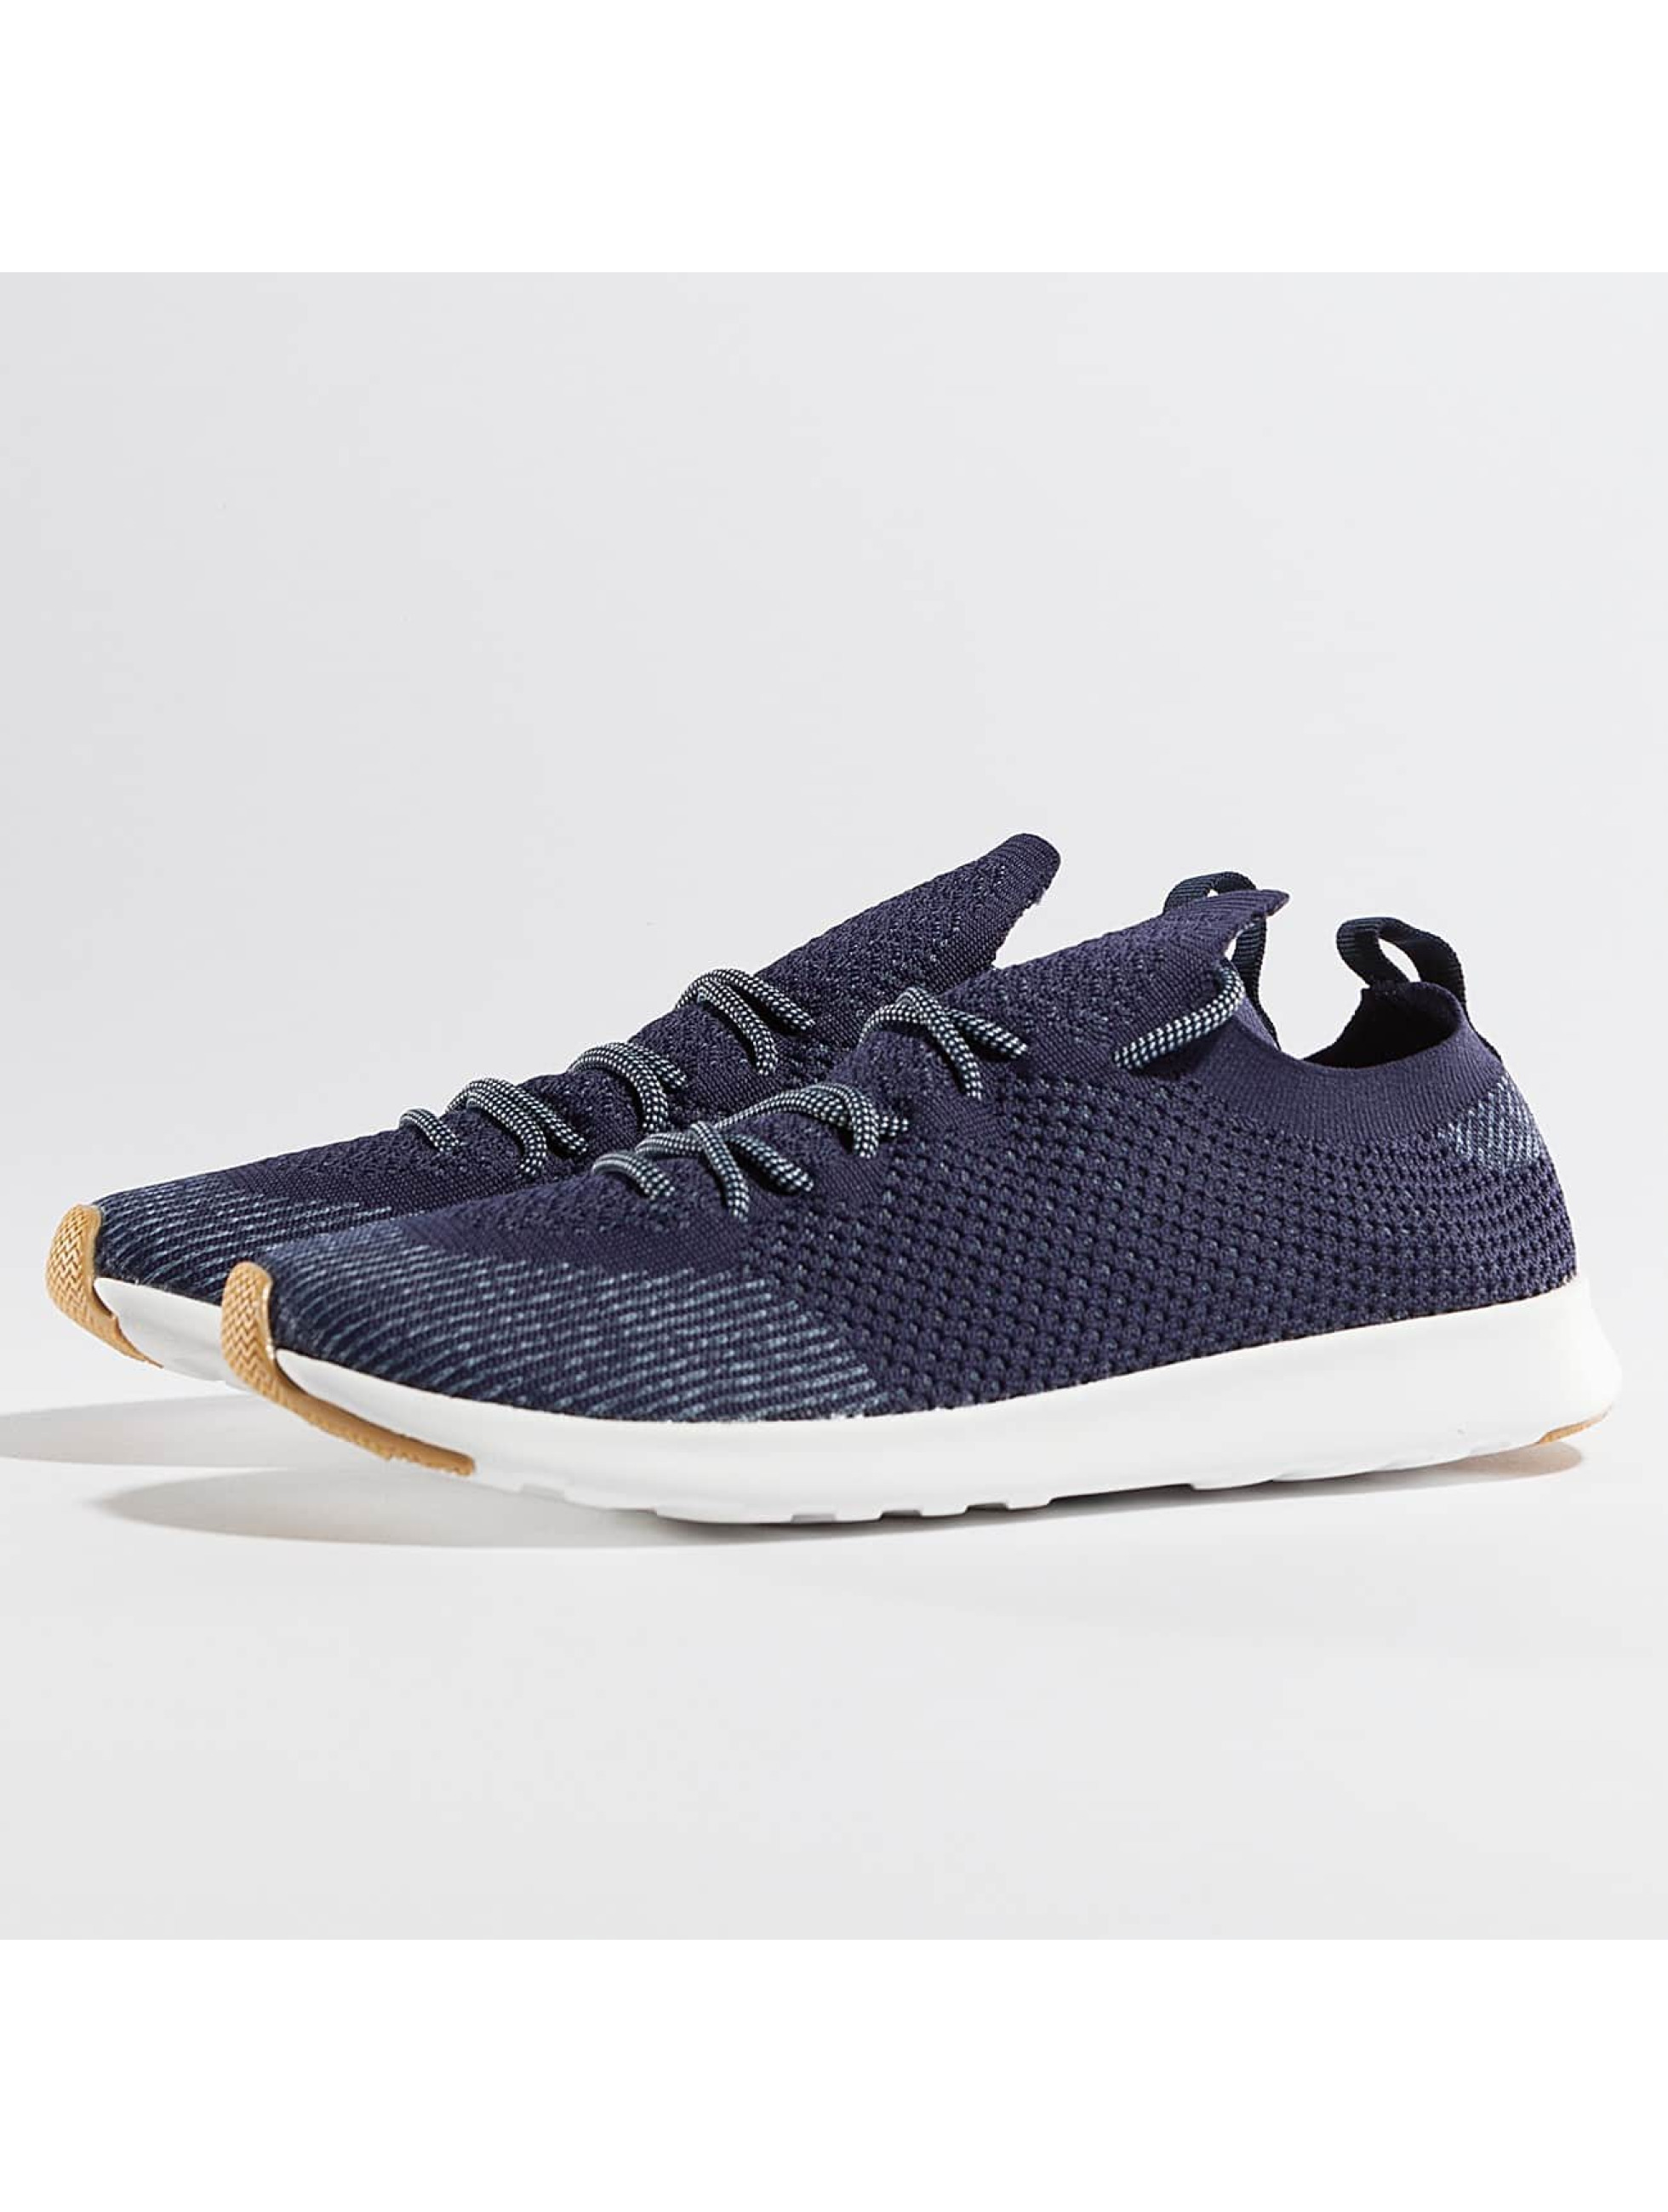 Native Frauen Sneaker AP Mercury LiteKnit in blau